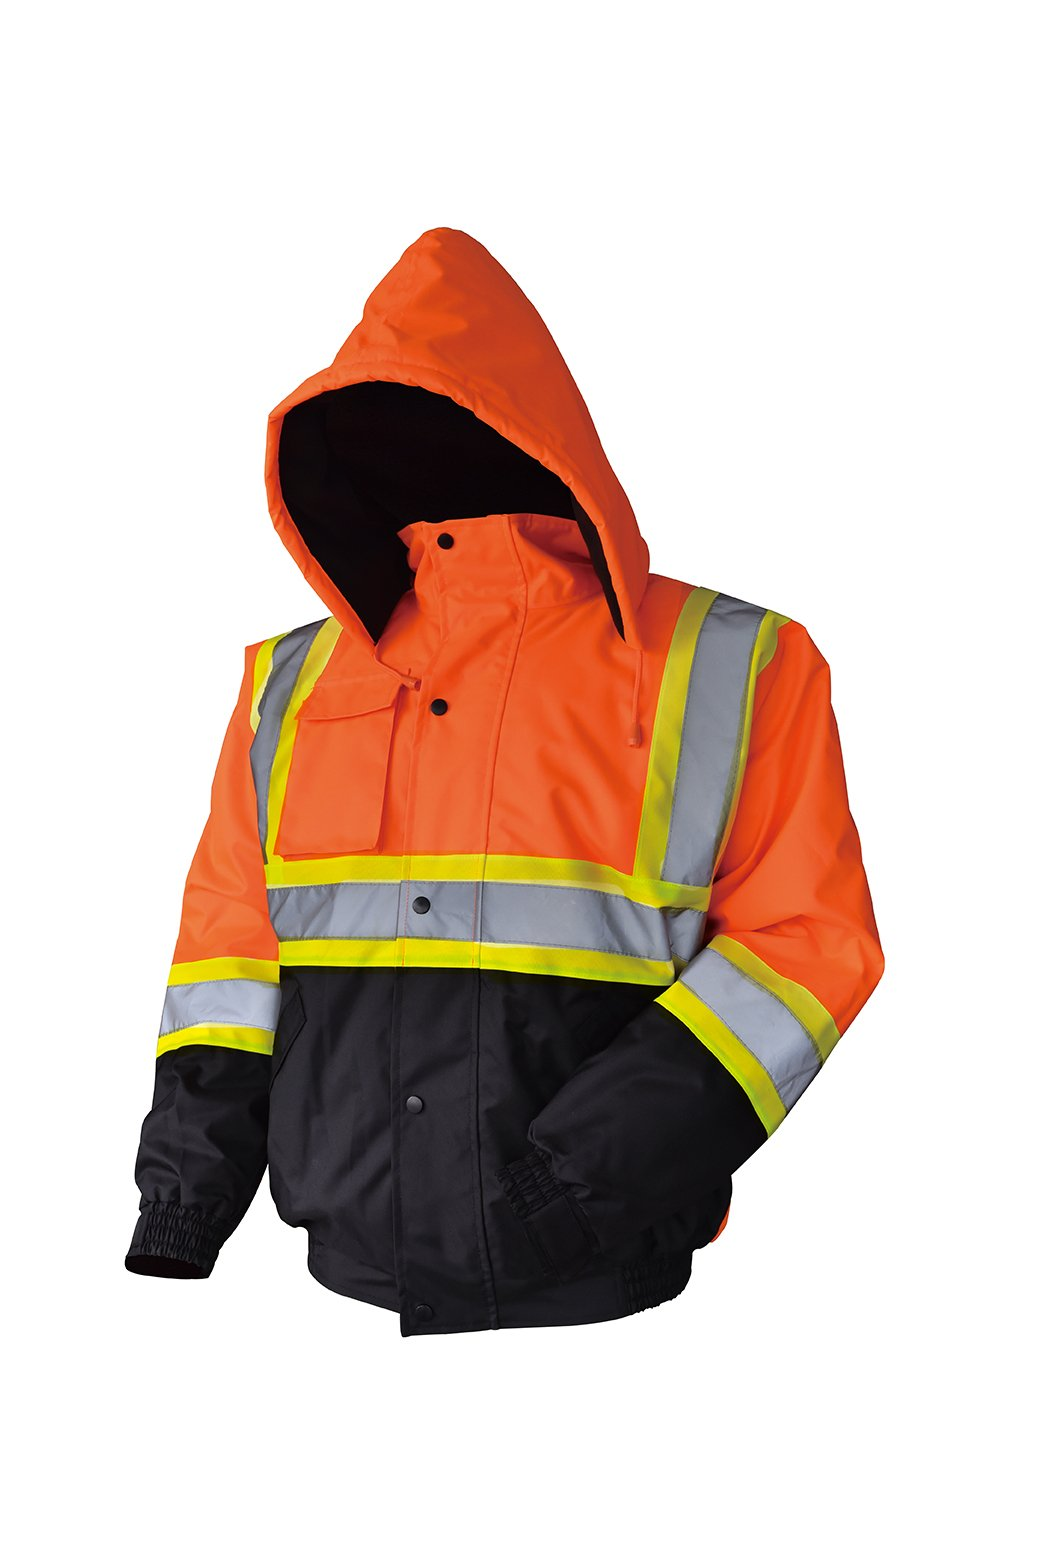 LM High Visibility Class III Reflective Waterproof Bomber Jacket W/Removable Hood (3XL, Orange)